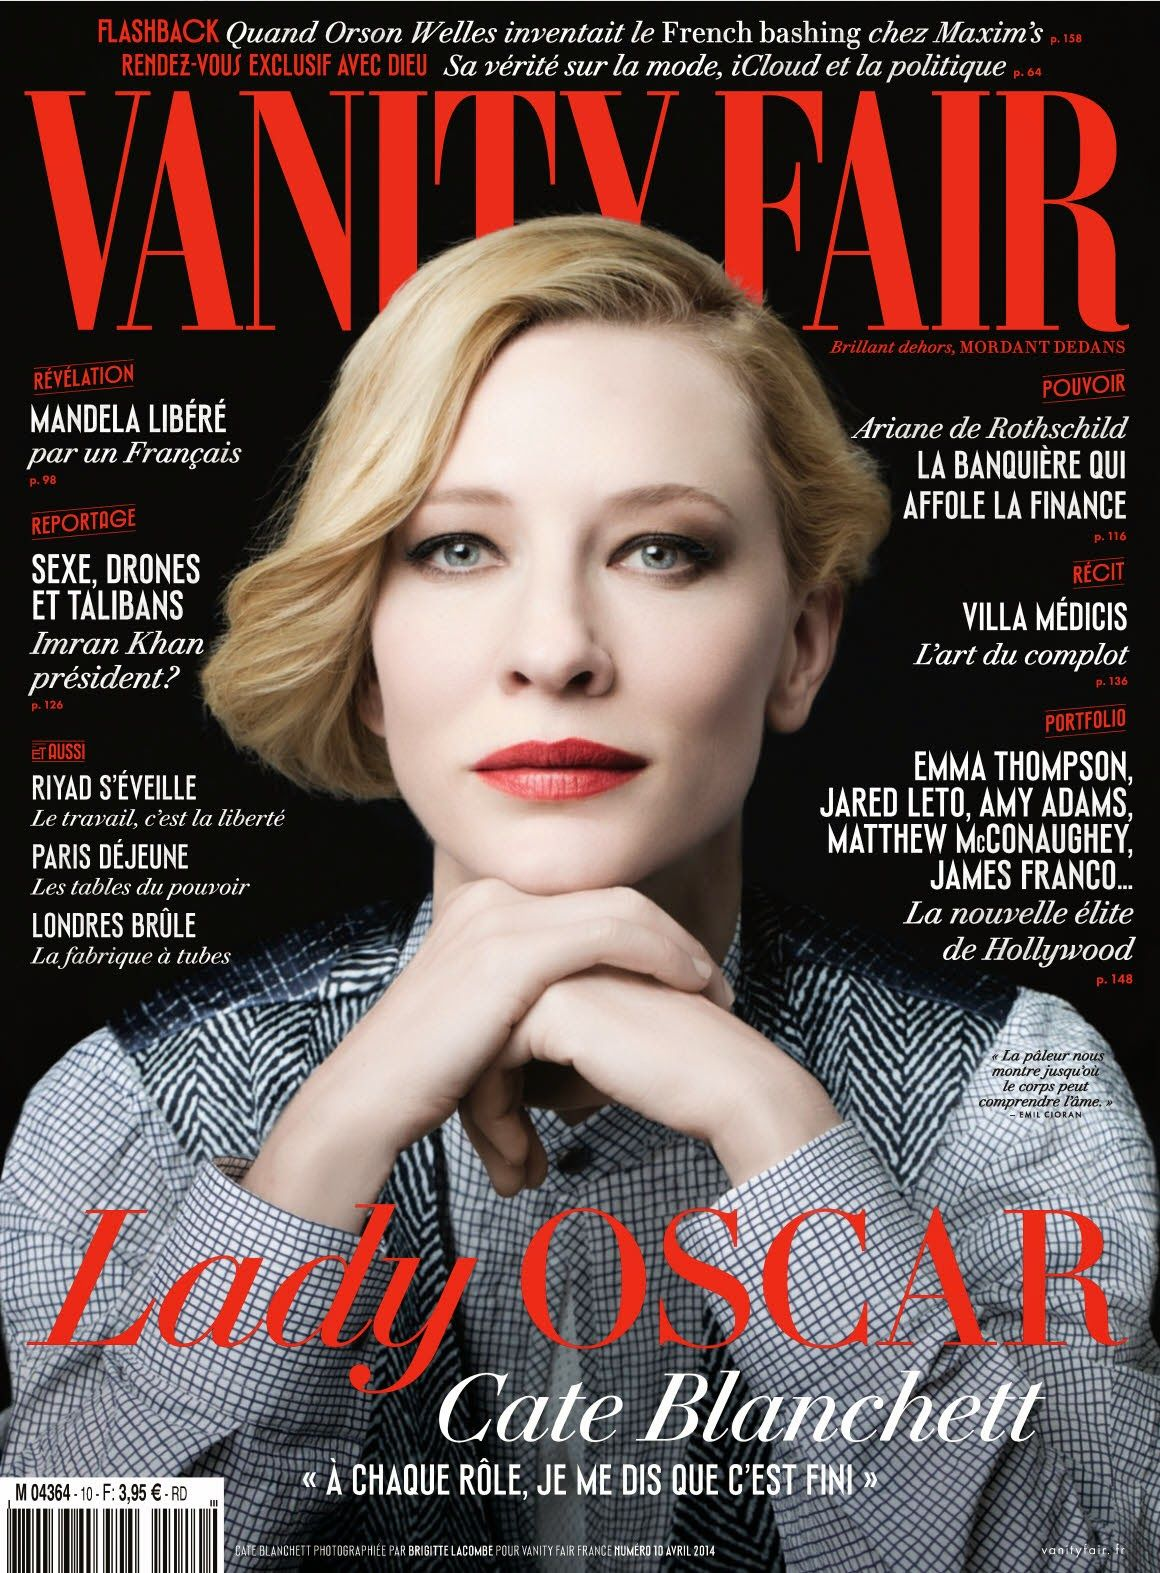 ICloud Cate Blanchett naked (26 images), Paparazzi